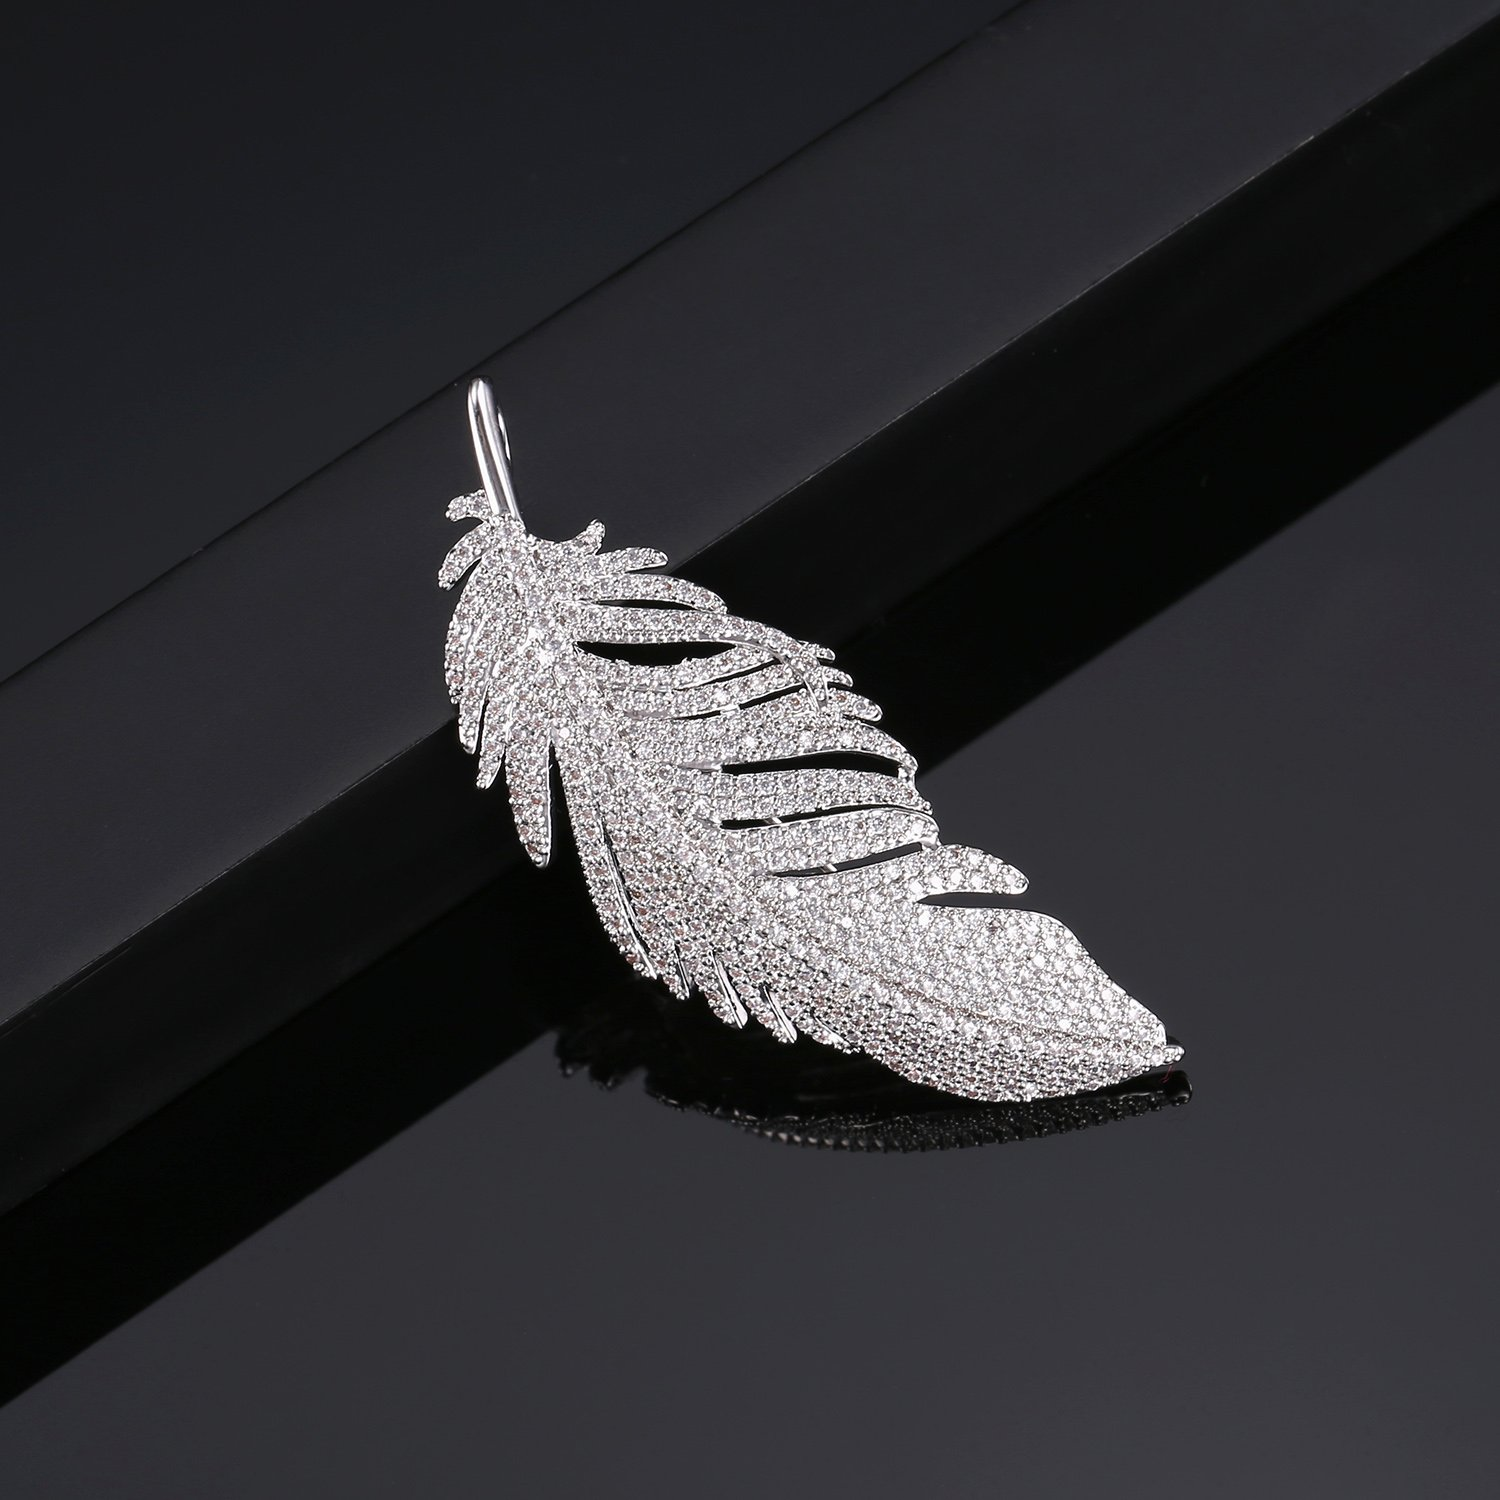 LILIE&WHITE White Gold Plated Cubic Zirconia Paved Feather Brooch Pin Mother's Day Gift Leaf Shape by LILIE&WHITE (Image #5)